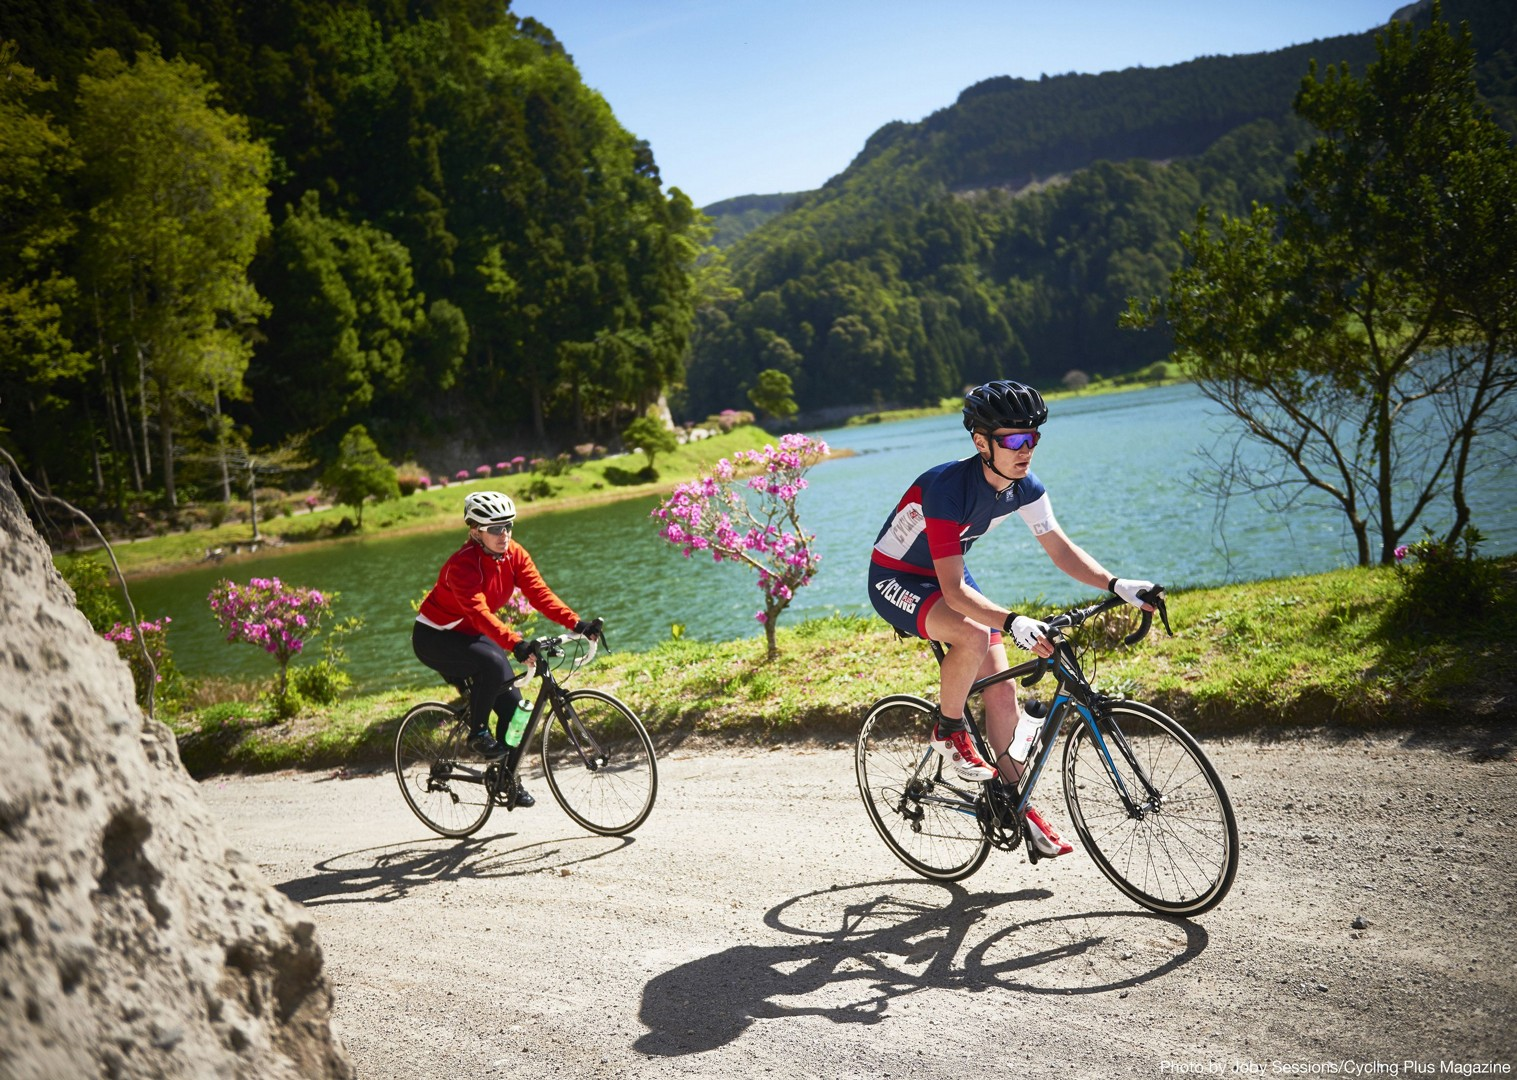 the-azores-lost-world-of-sao-miguel-guided-road-cycling-holiday.jpg - The Azores - Lost World of Sao Miguel - Guided Road Cycling Holiday - Road Cycling